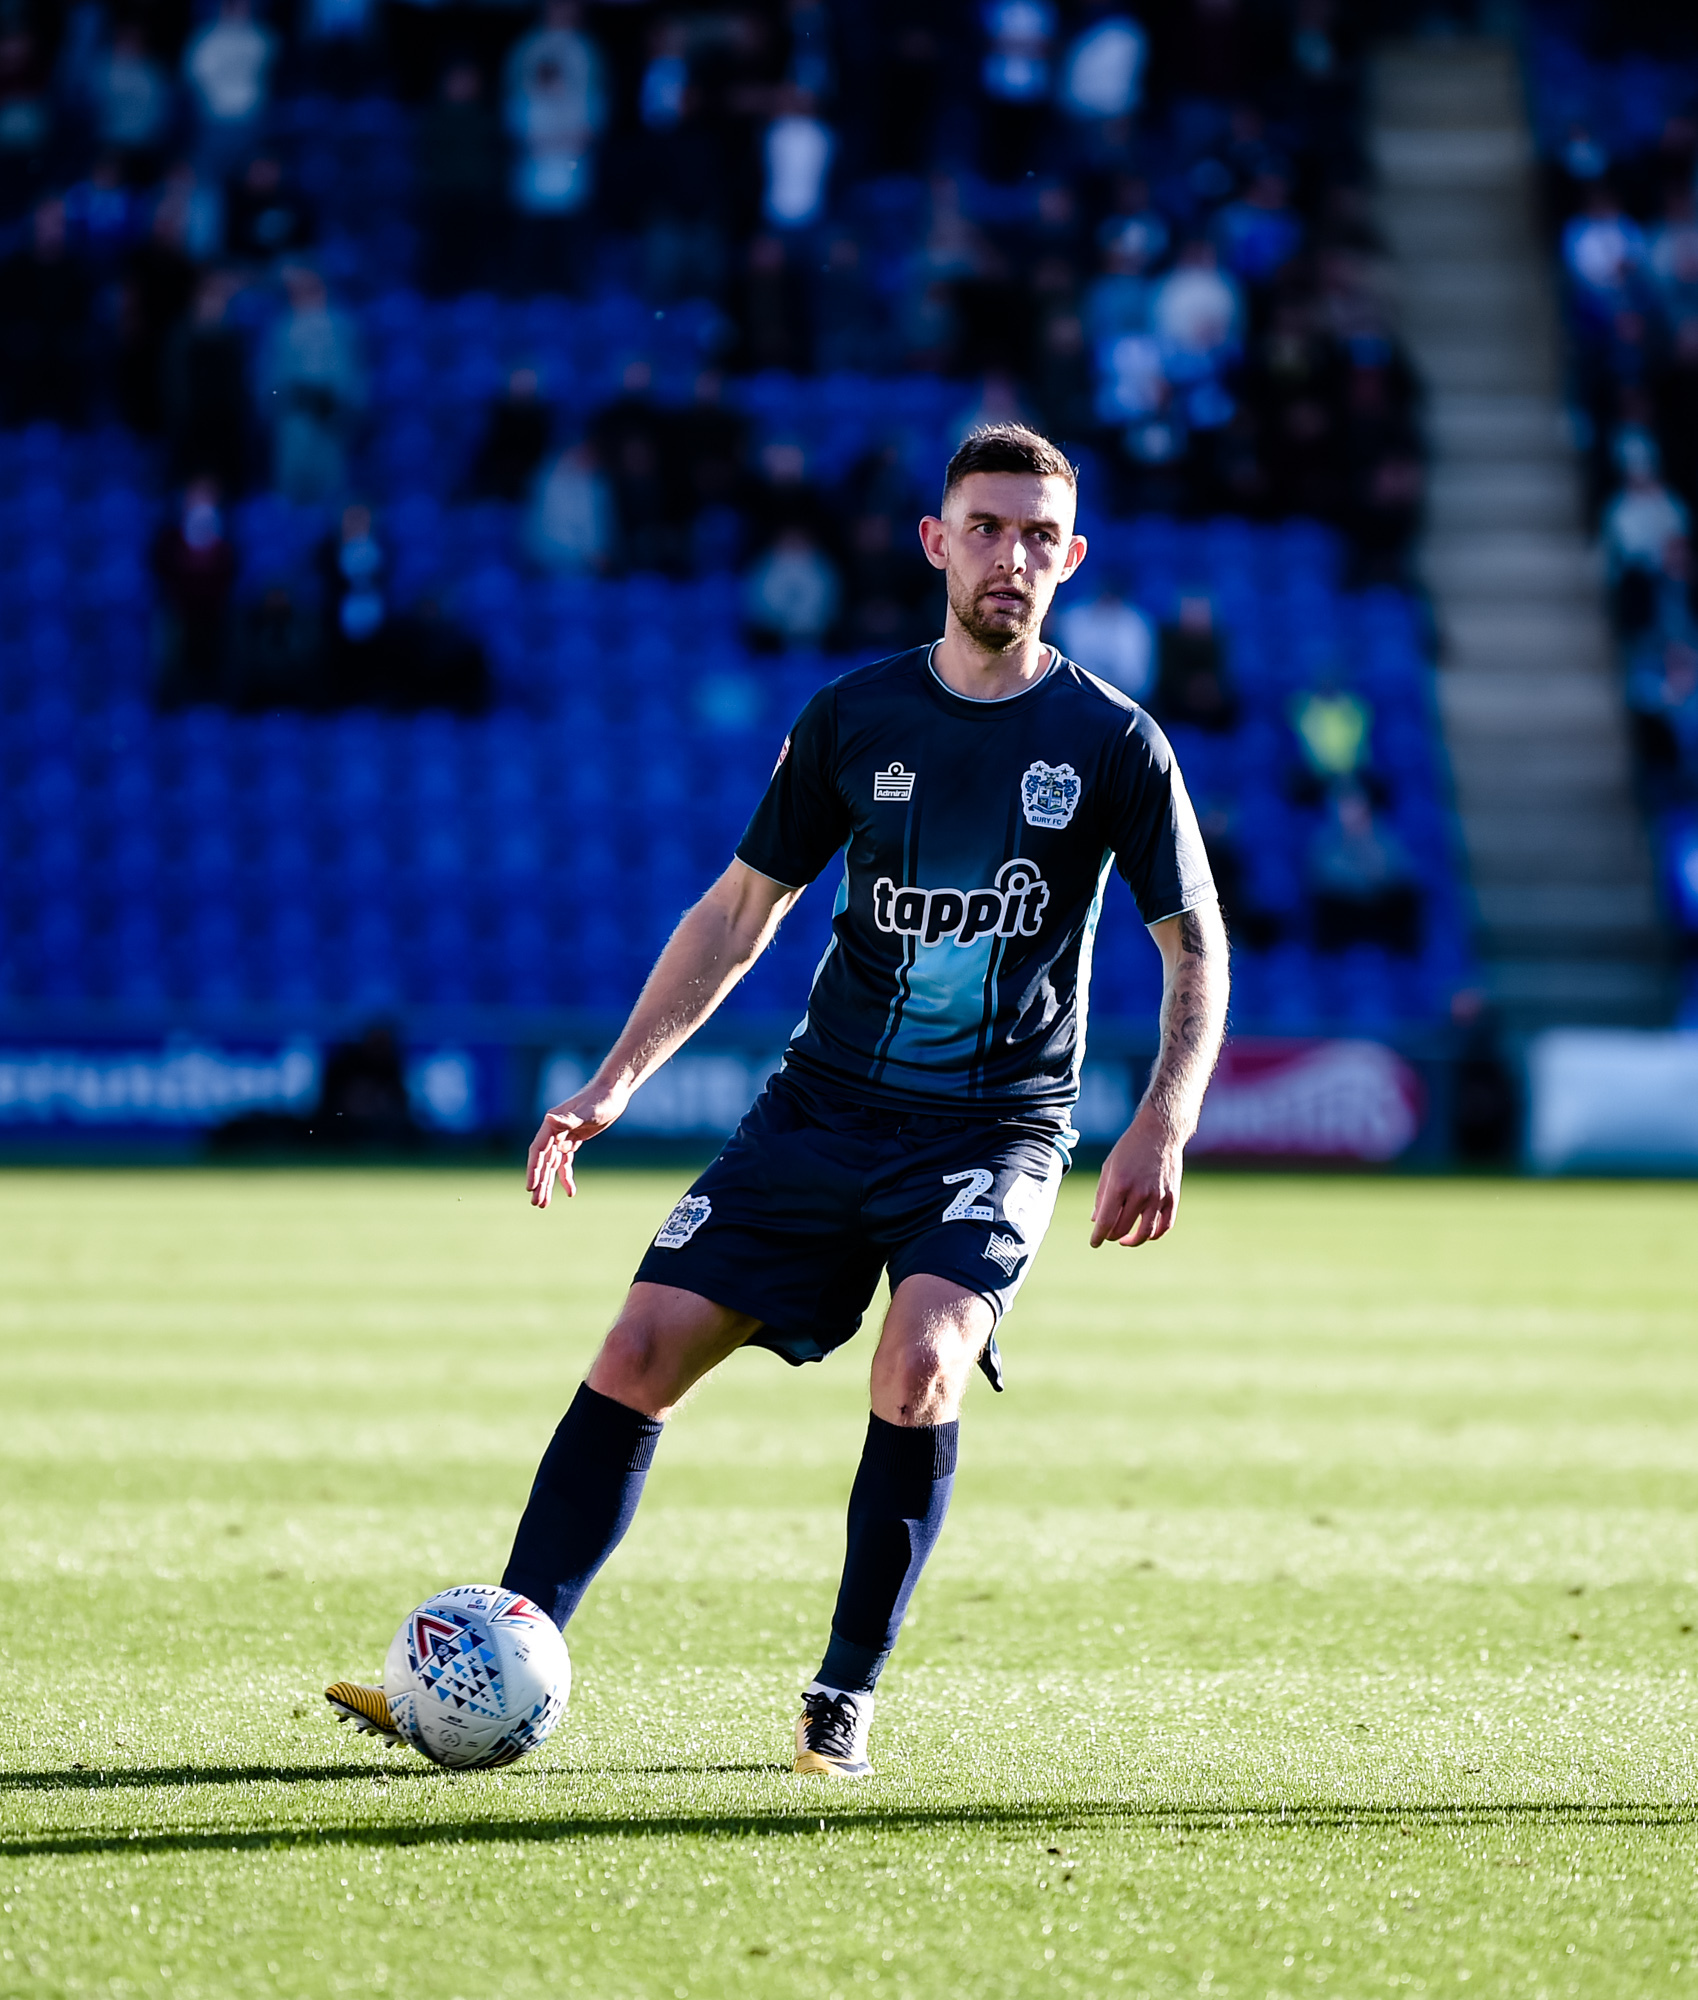 Bury midfielder Jay O'Shea during the Sky Bet League 2 match between Colchester United and Bury FC at the JobServe Community Stadium, Colchester on Saturday 29th September 2018. Credit: Andy Whitehead...Tel: +44 7746 877546.e-mail: info@andywhiteheadp